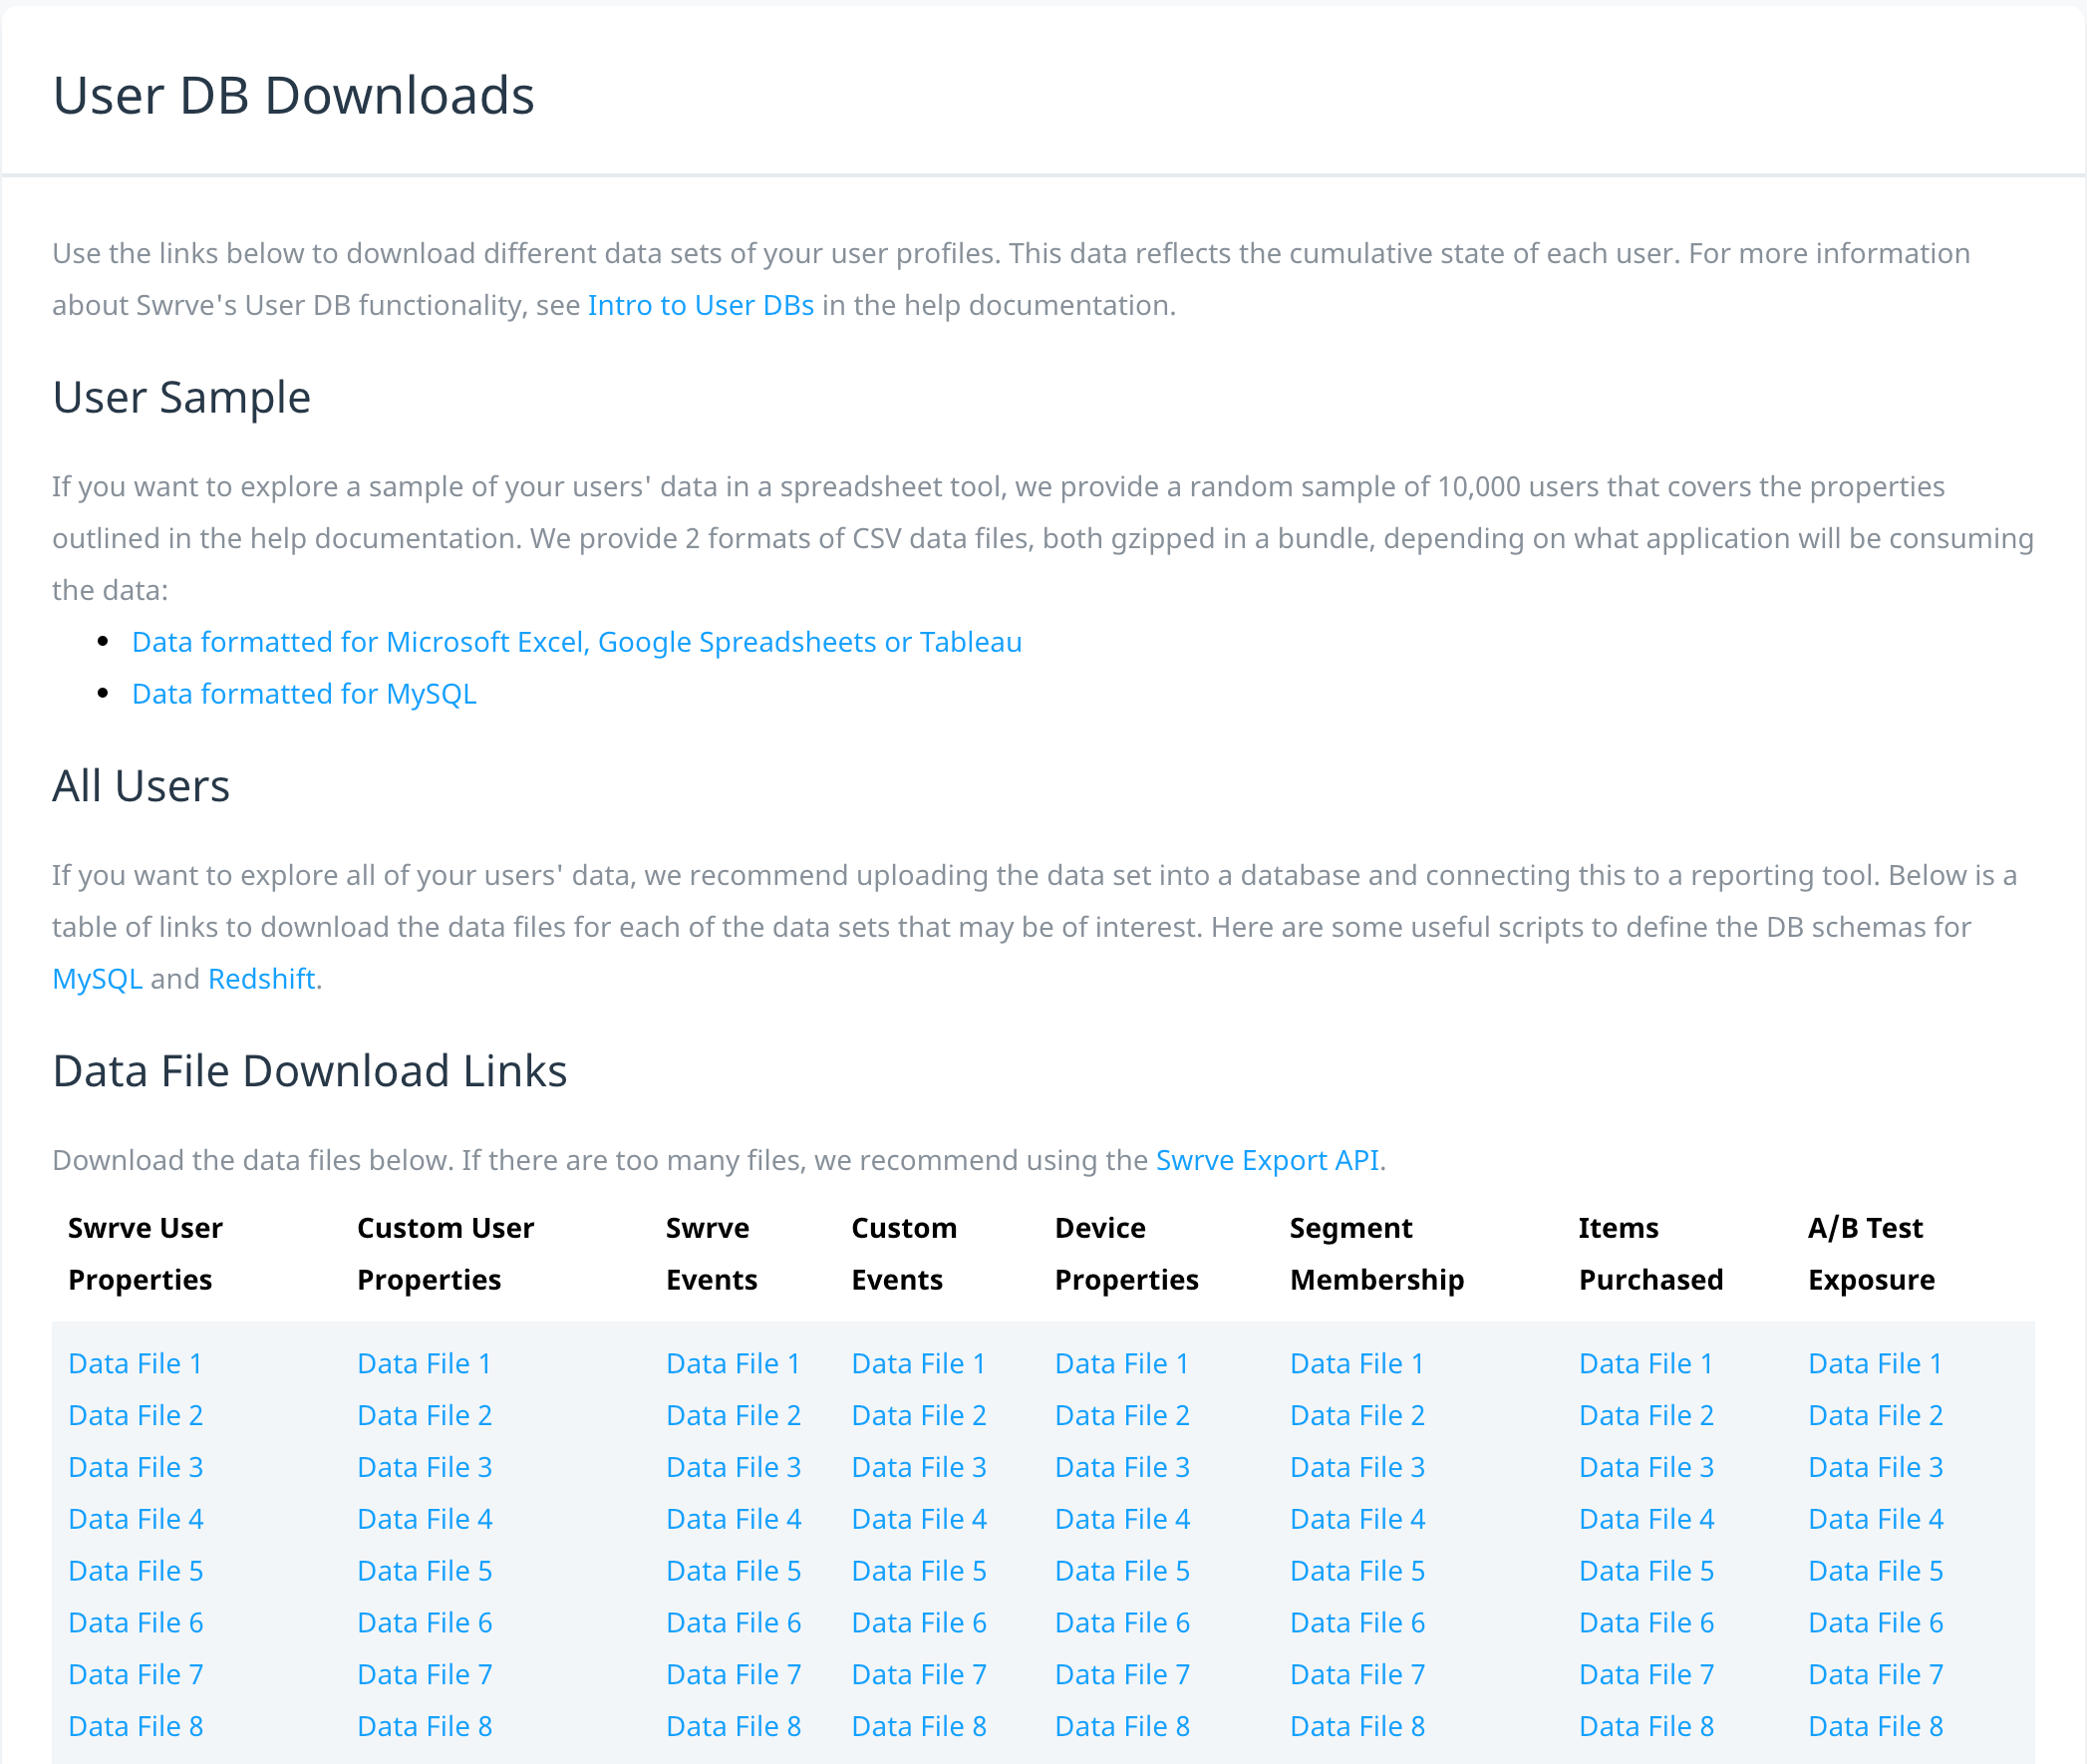 User databases download screen